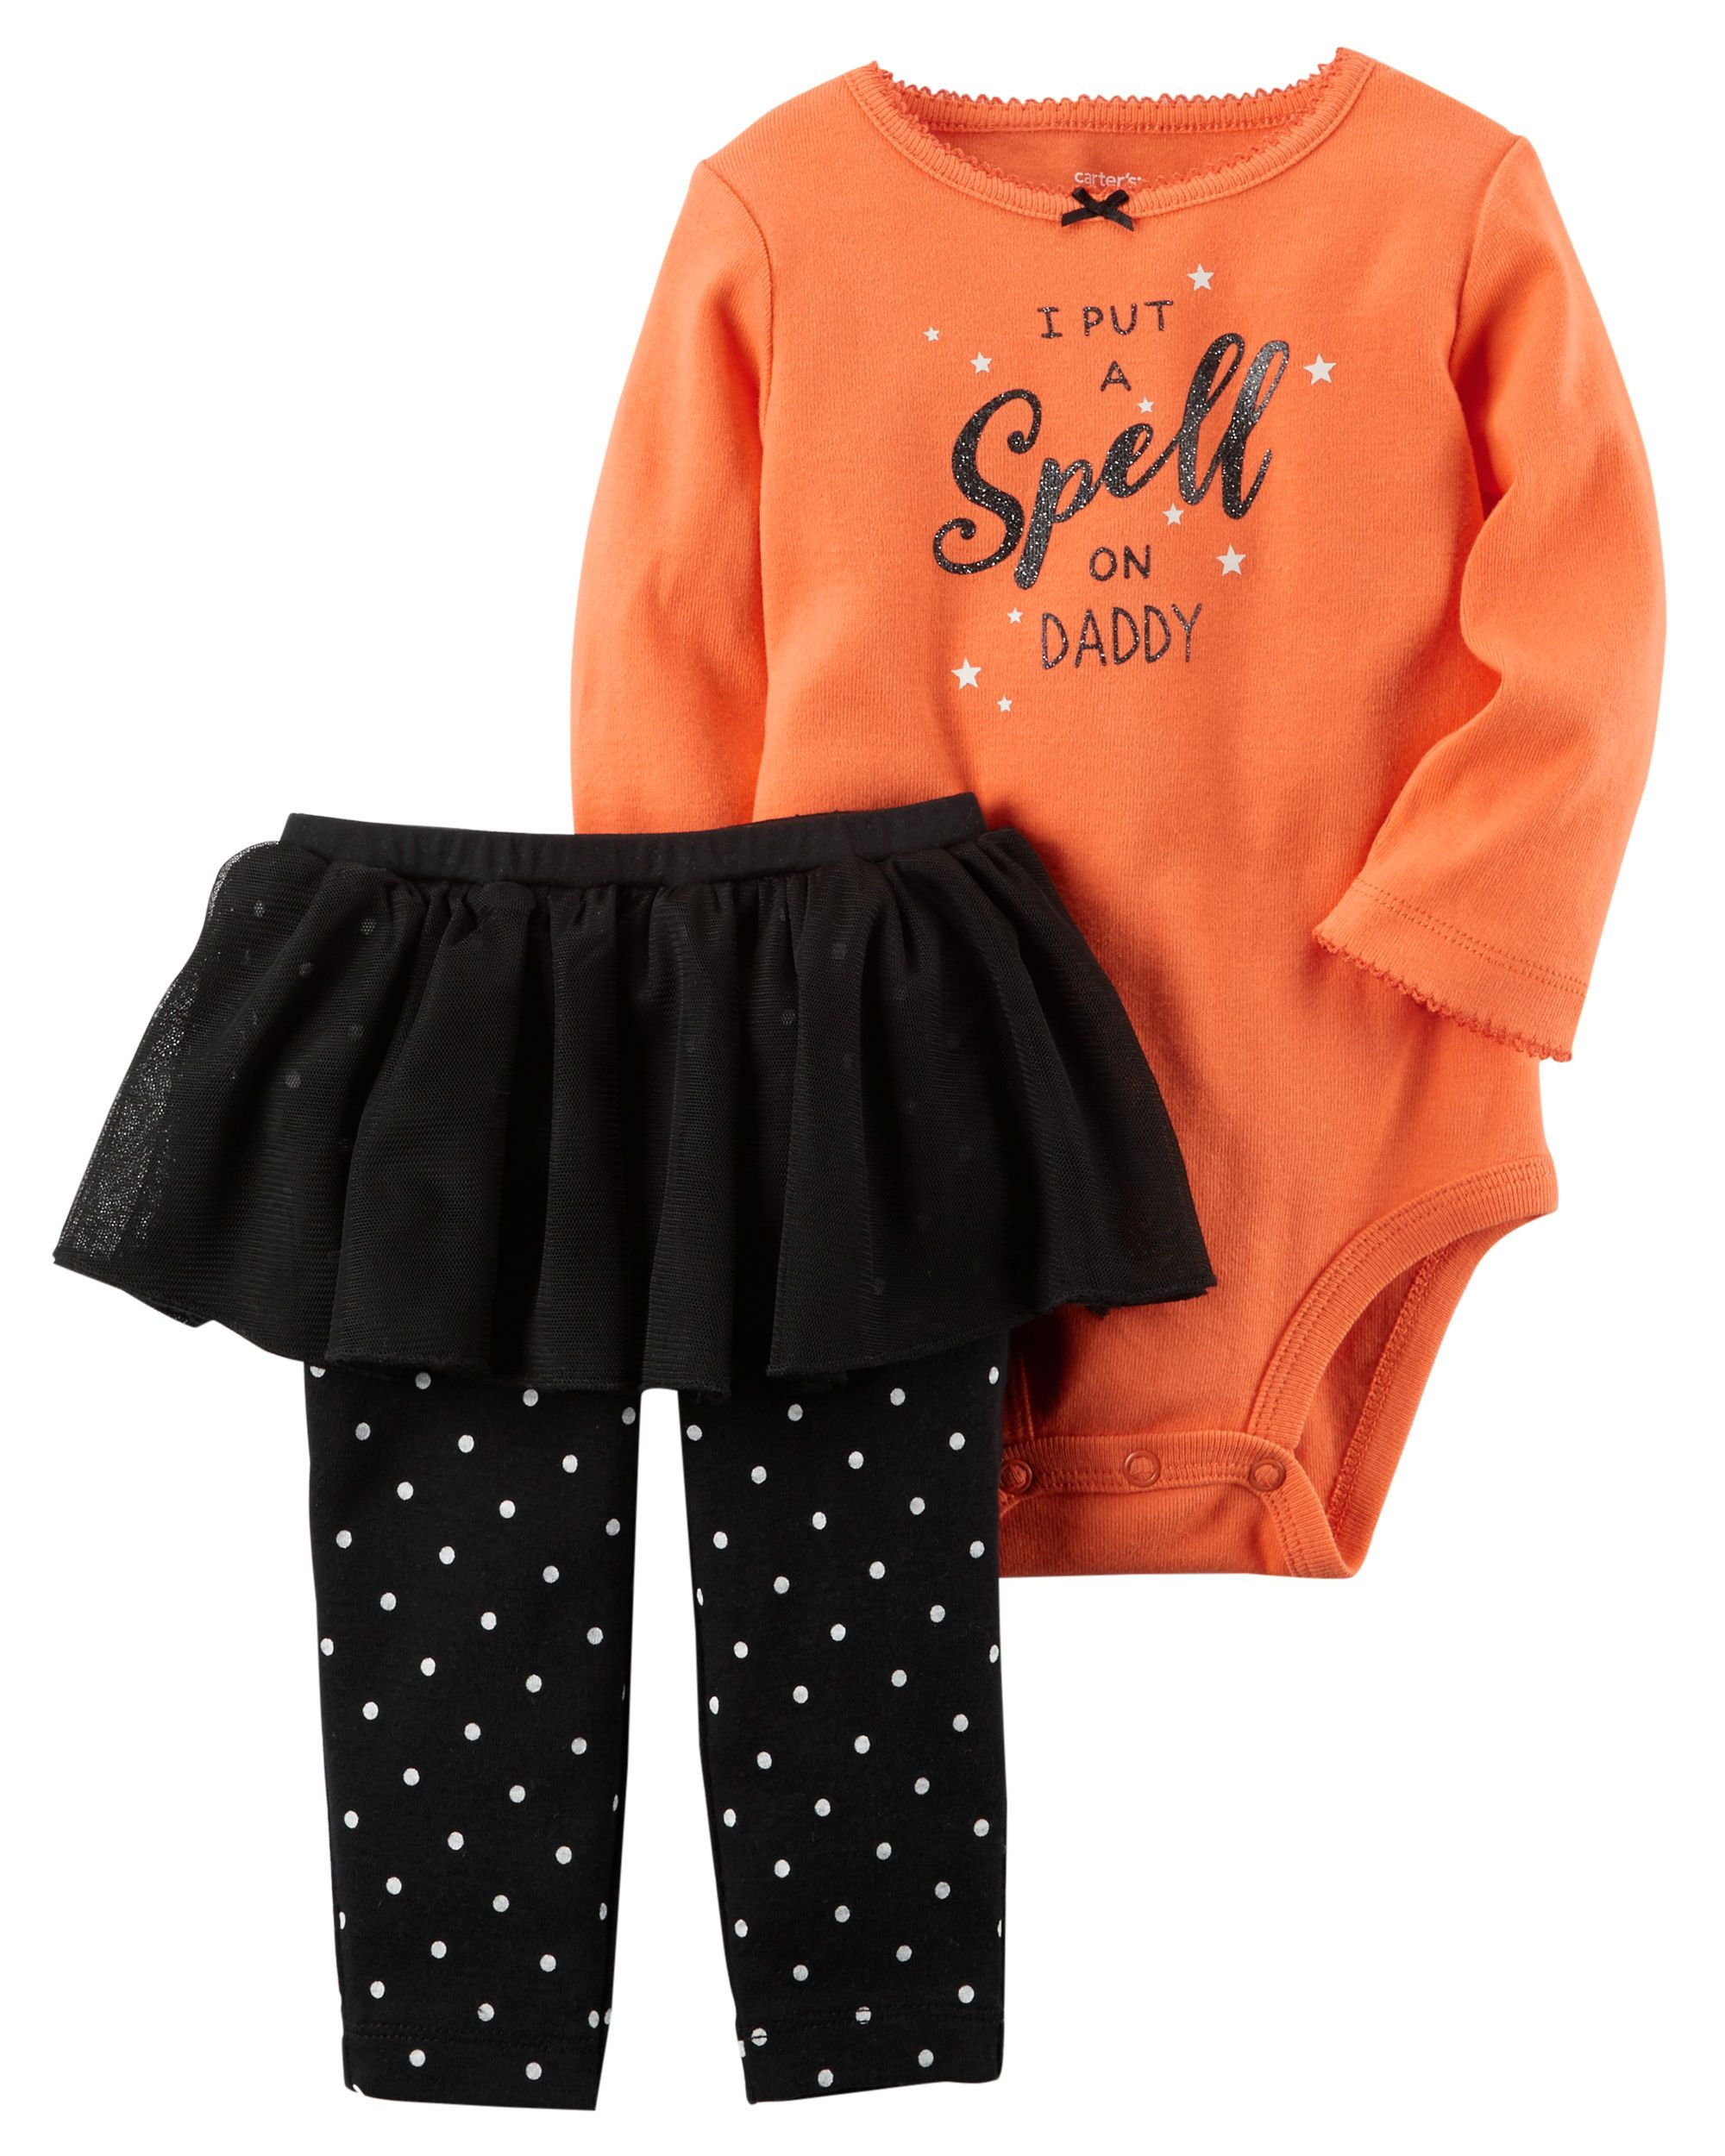 4c8382a19 2-Piece Bodysuit & Tutu Pant Set | Baby | Baby halloween outfits ...